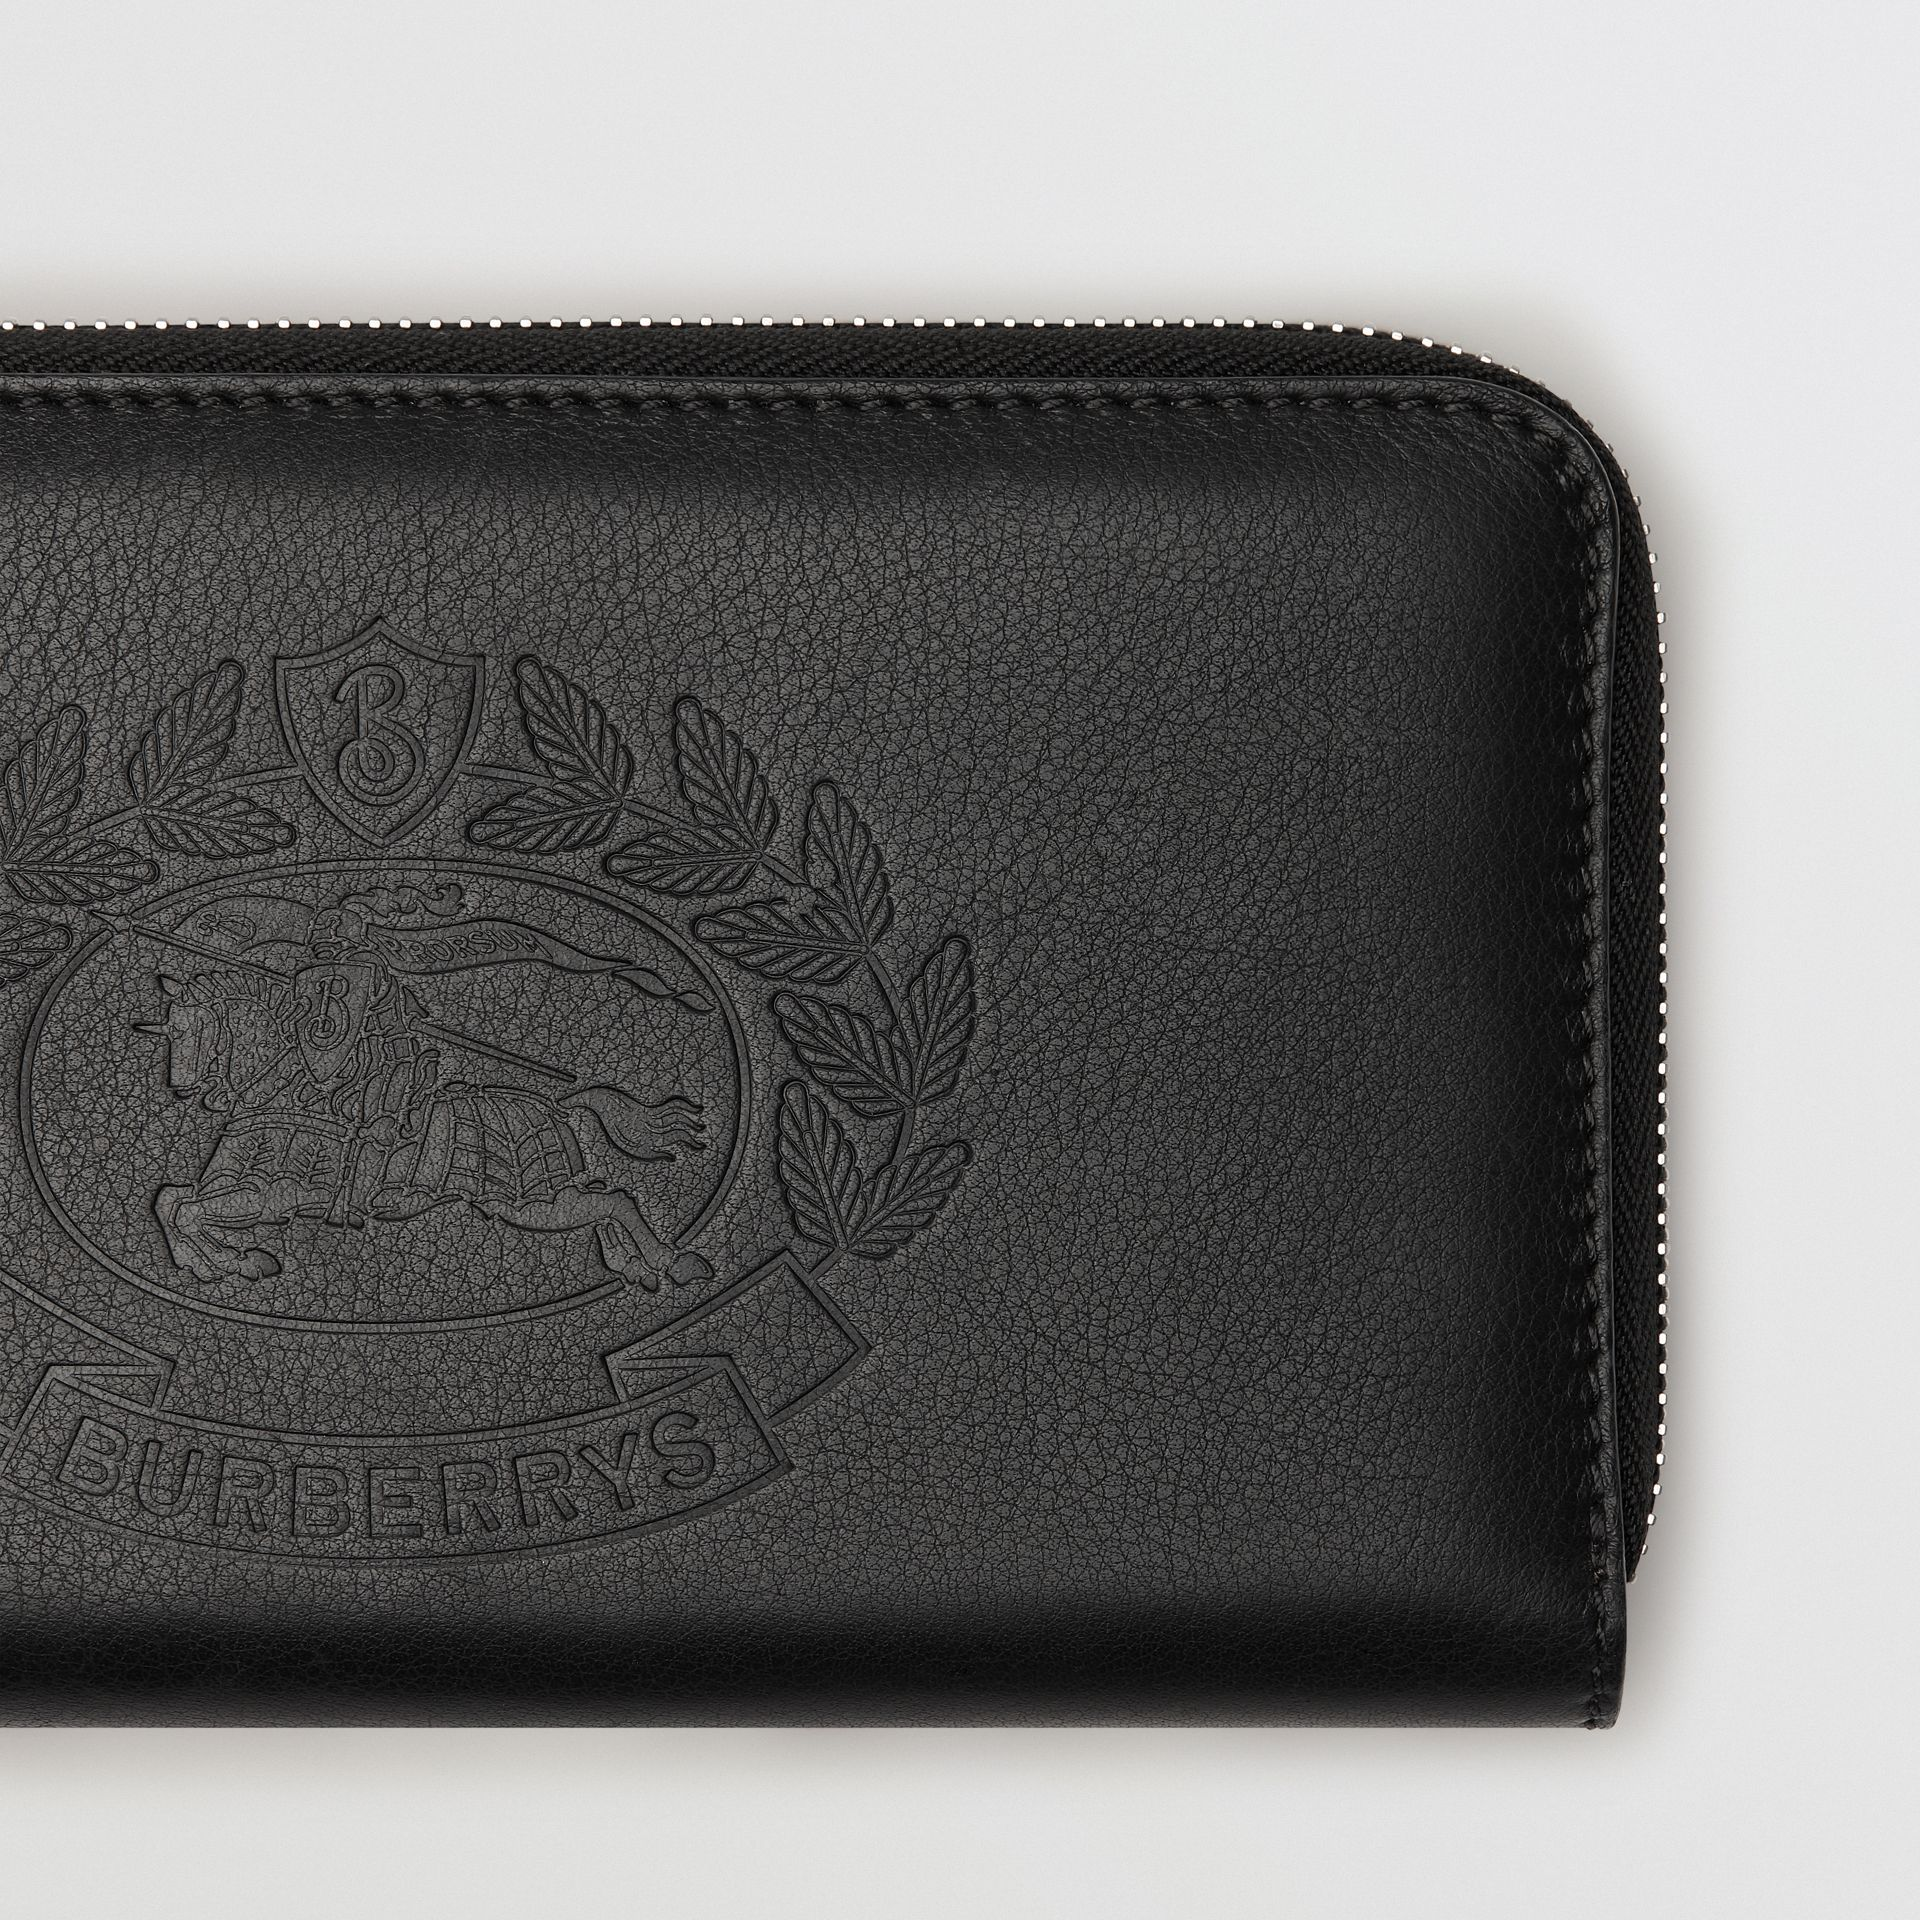 Embossed Crest Two-tone Leather Ziparound Wallet in Black - Women | Burberry United States - gallery image 1